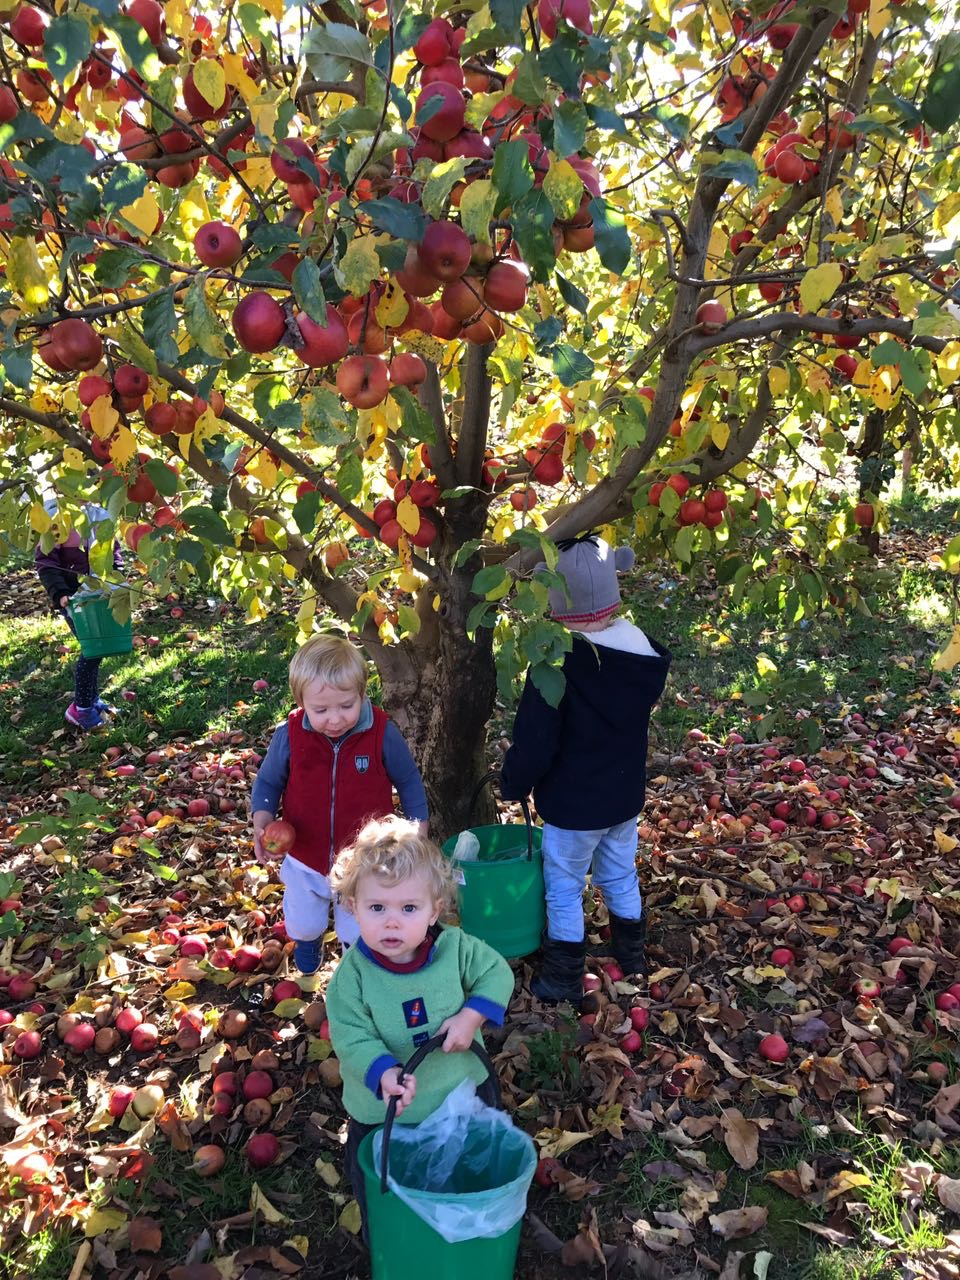 Enjoying apple picking at Hillside Orchard in Borenore, 10 minutes from Orange by car.